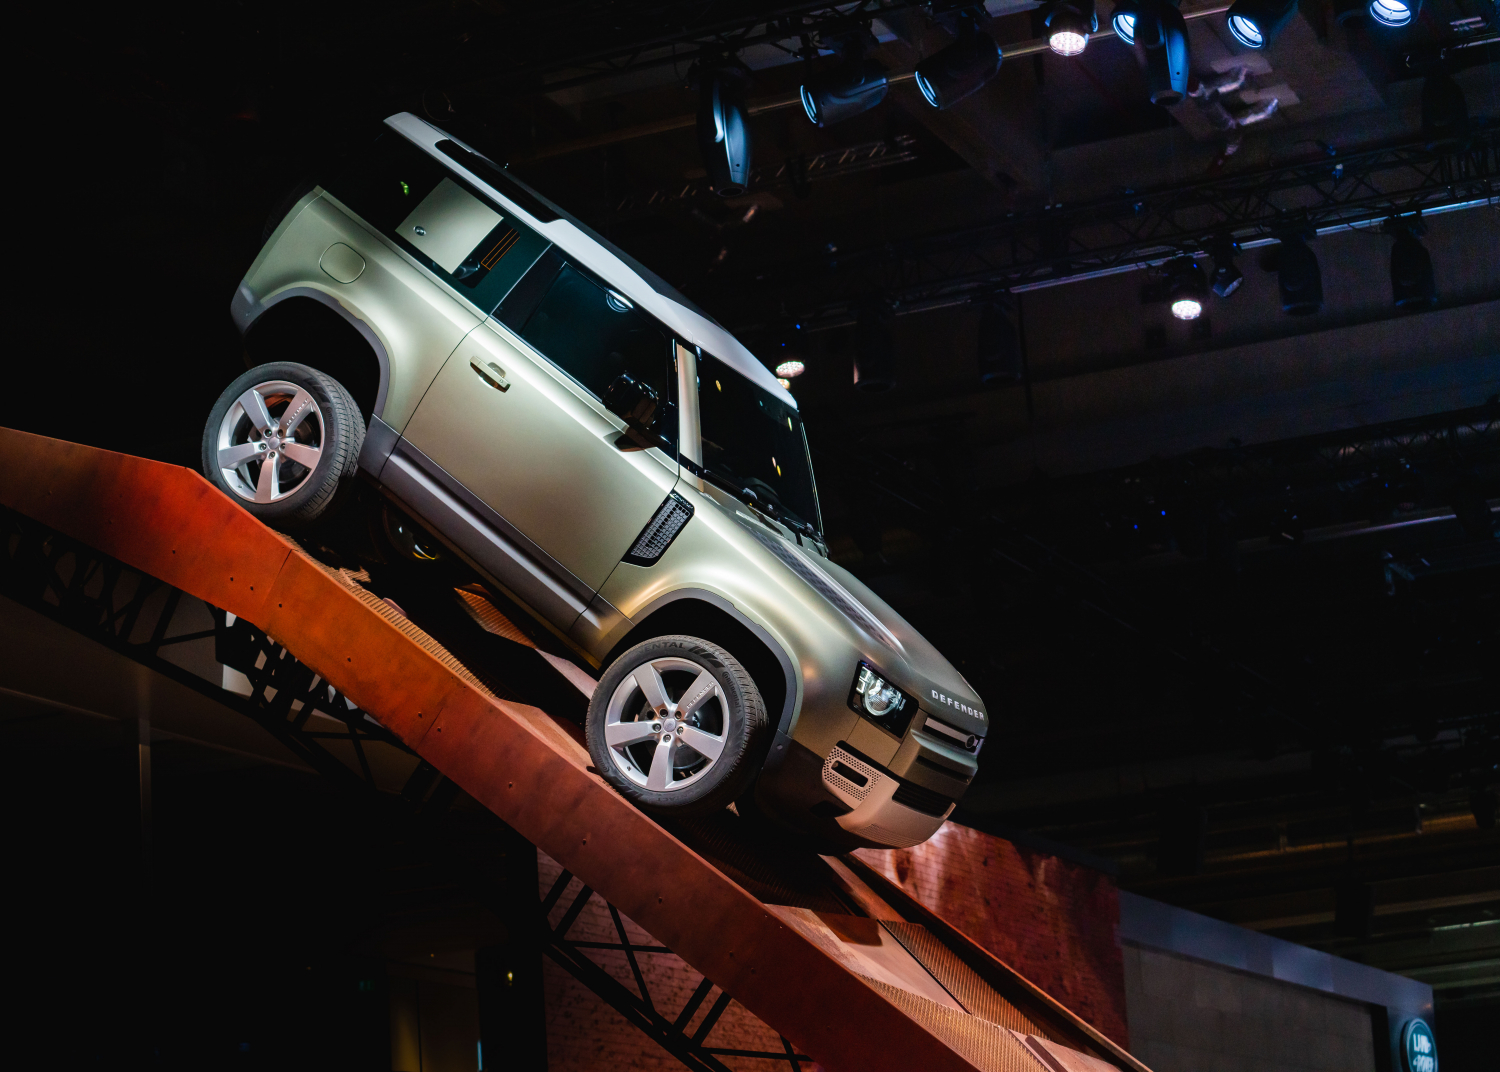 NEW DEFENDER MAKES SHOW-STOPPING ARRIVAL FOR ITS GLOBAL DEBUT AT FRANKFURT MOTOR SHOW